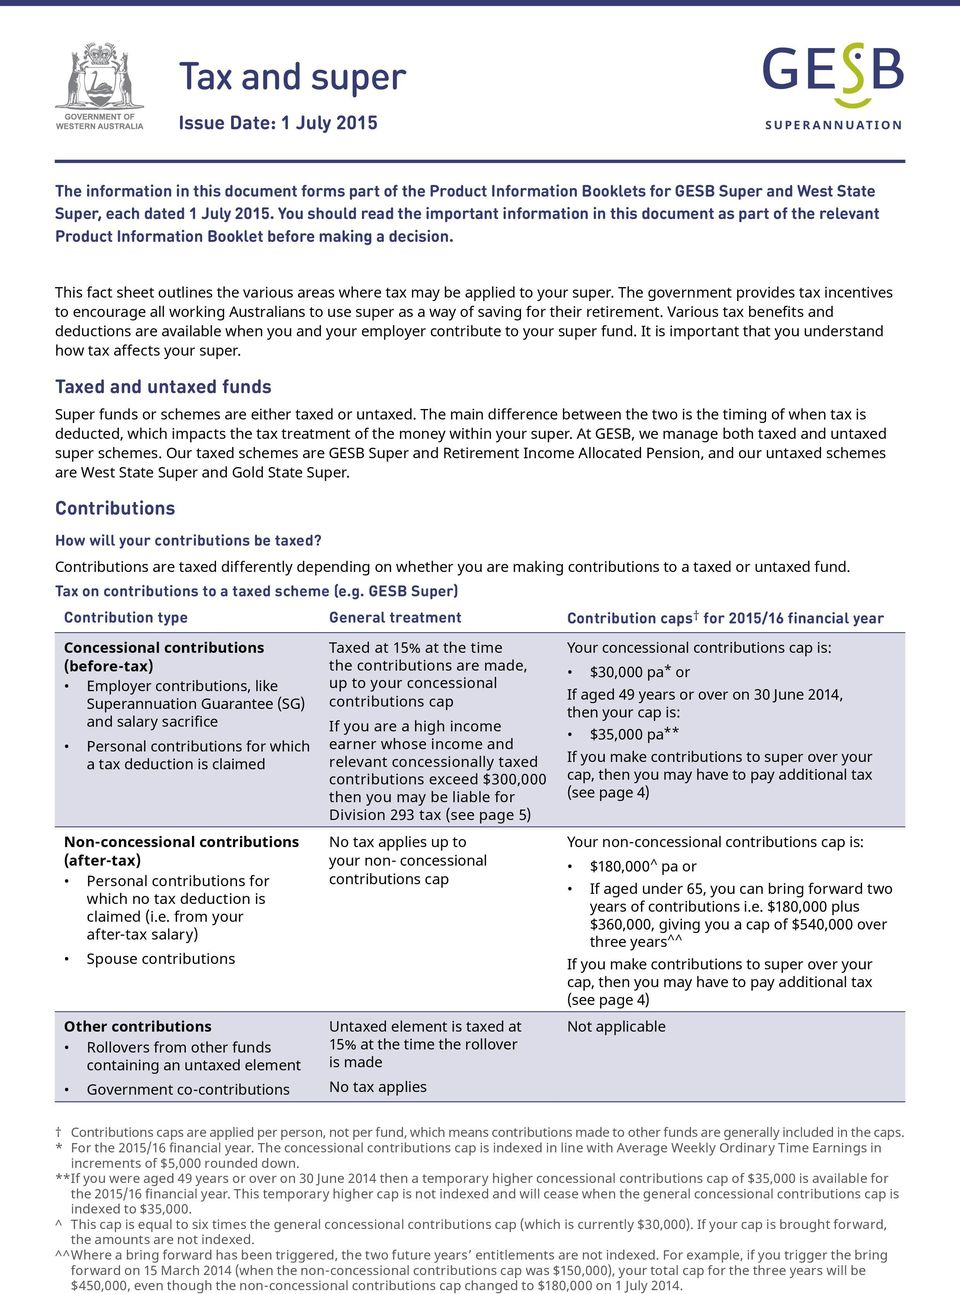 This fact sheet outlines the various areas where tax may be applied to your super.